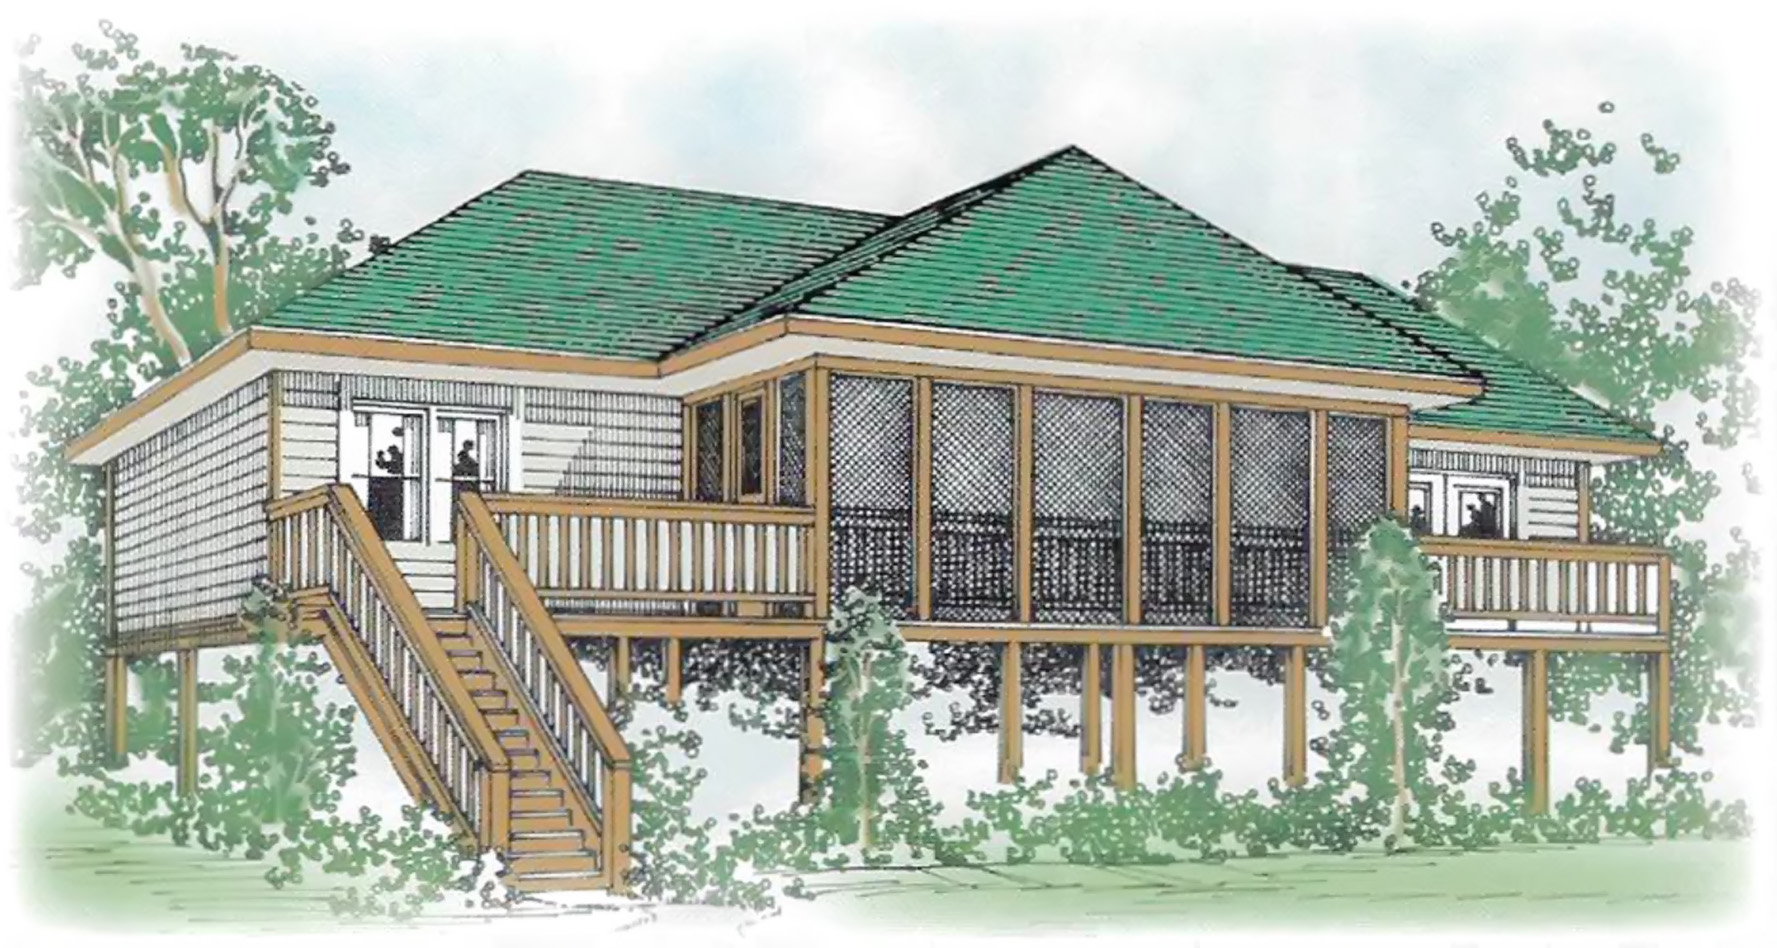 Ebtide Pennyworth Homes Tallahassee Home Builder